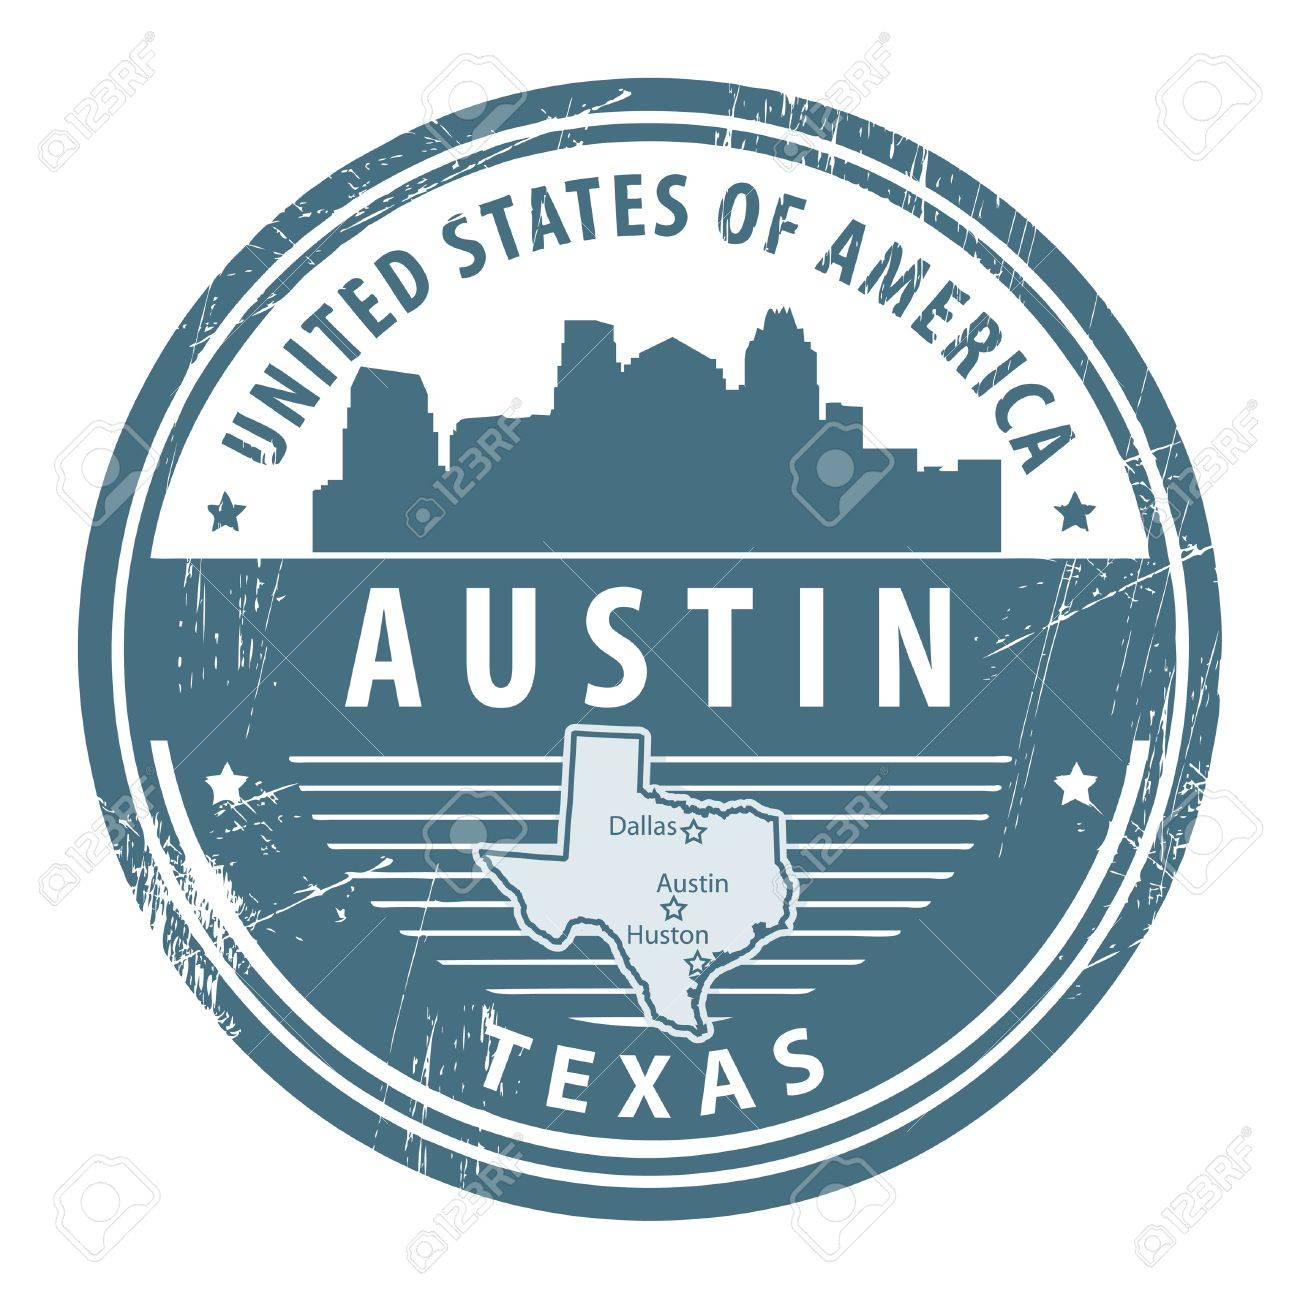 Grunge rubber stamp with name of Texas, Austin Stock Vector - 14937060